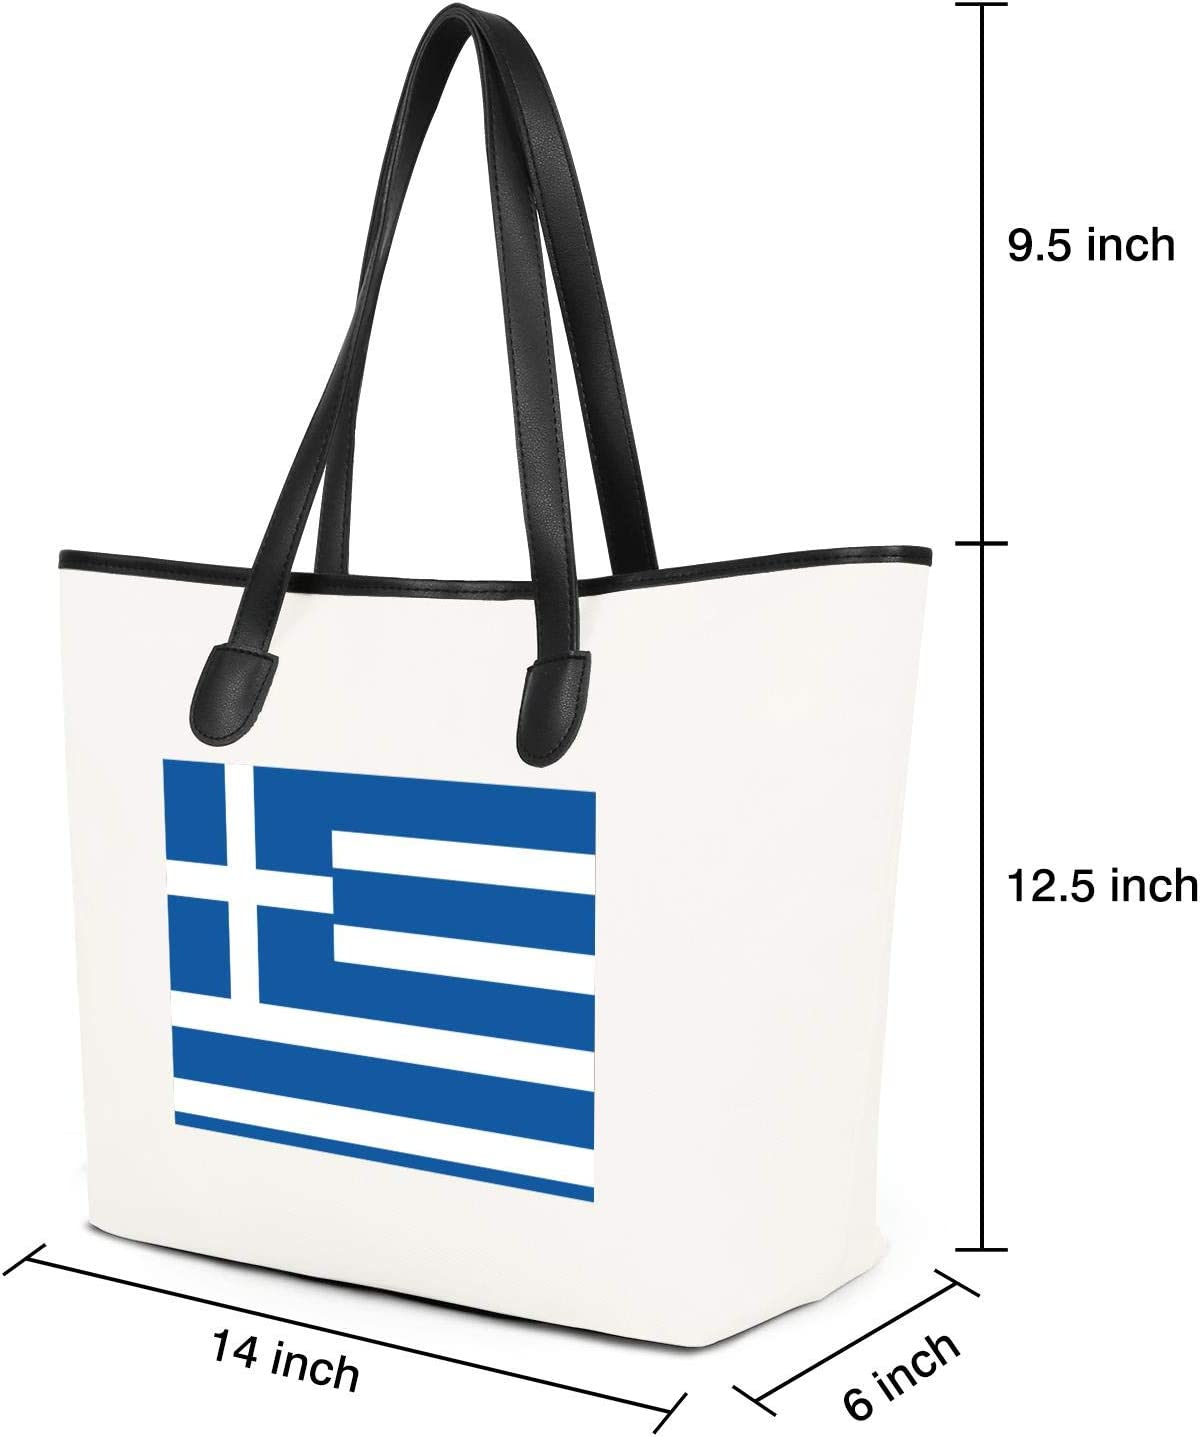 12.5X14 Inches Cute Zip Canvas Large Tote Bag Crazy Filipino Philippines Flag Lady Beach Bag Handles Shoulder Bag Women Purse Grocery Bag Fashion Handbags Tote Bag Top Handle Satchel Purse